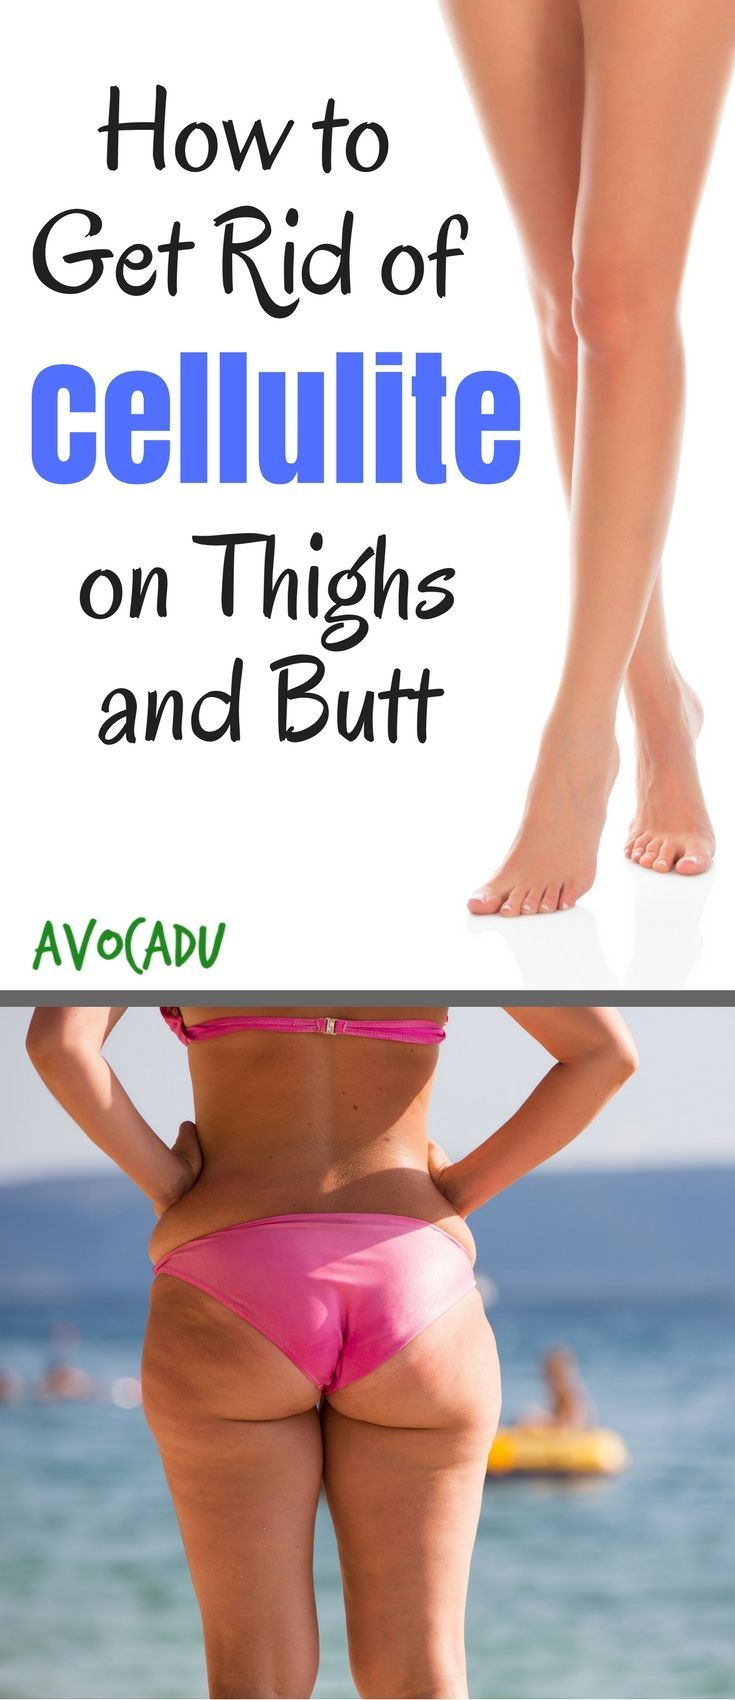 7739b2fac3a7d0d27a51d2eded9c5952 - How To Get Rid Of Cellulite On Bottom And Thighs